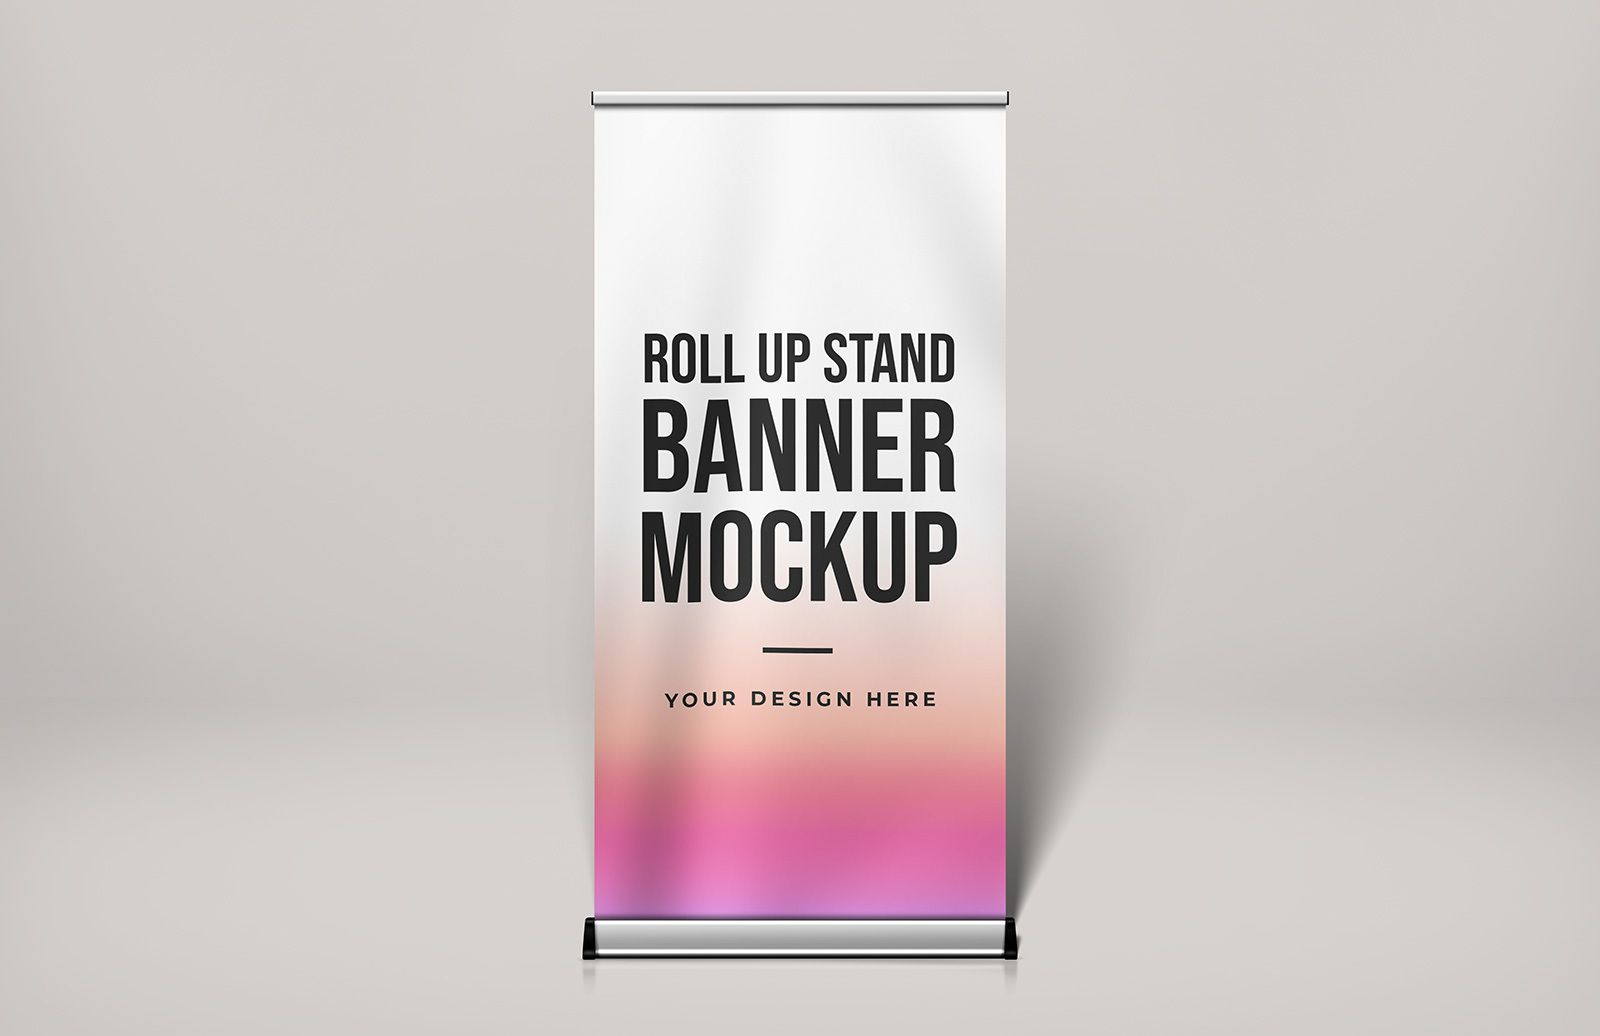 Roll Up Stand Banner Mockup Preview 1